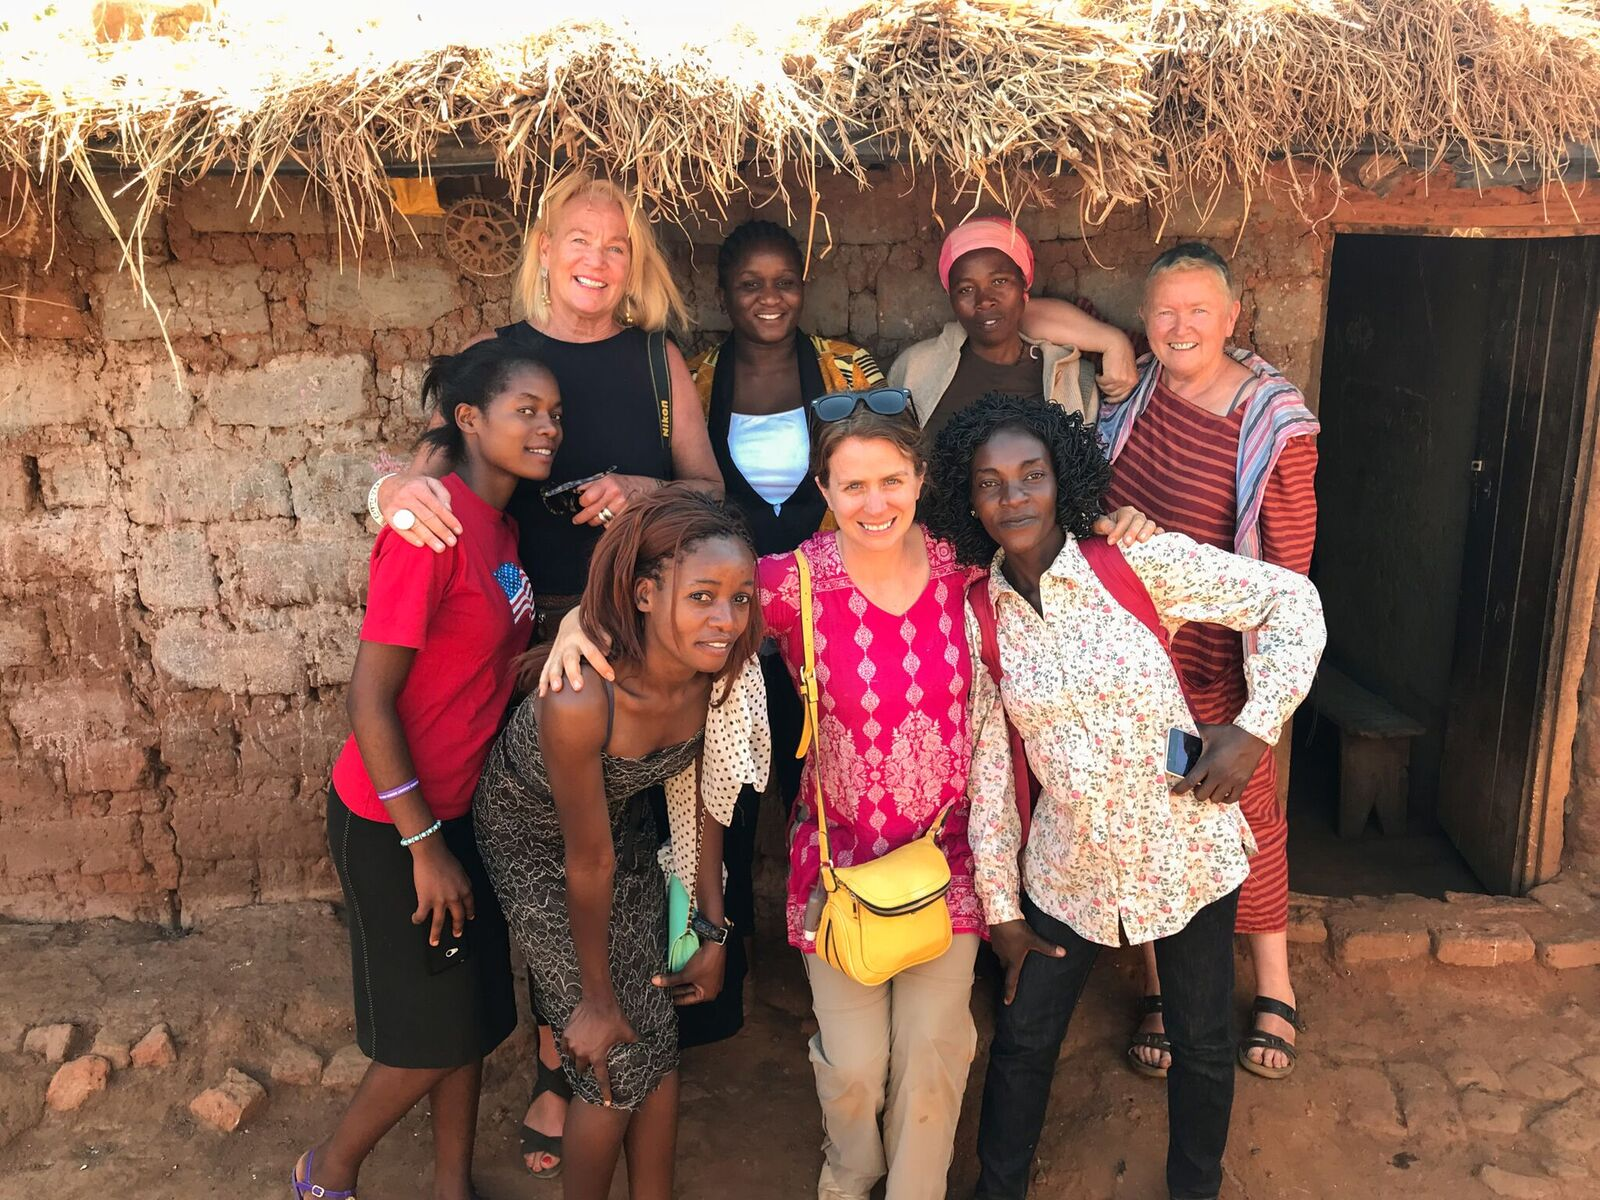 Lauren Anders Brown and Janie Hampton with women in Malawi